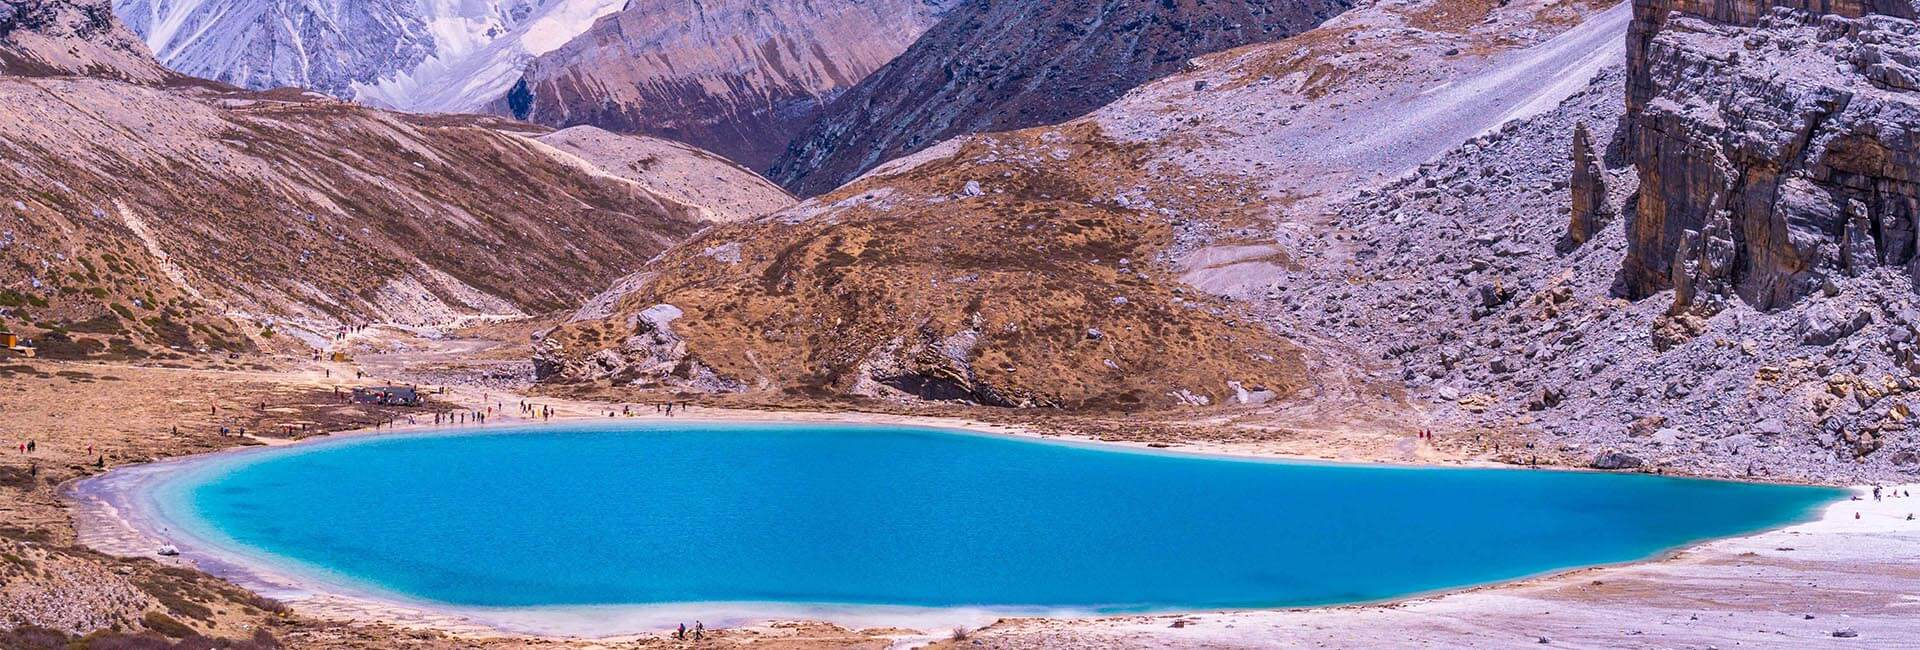 4 Days Daocheng Yading Classic Hiking Tour from Chengdu (by Flight)